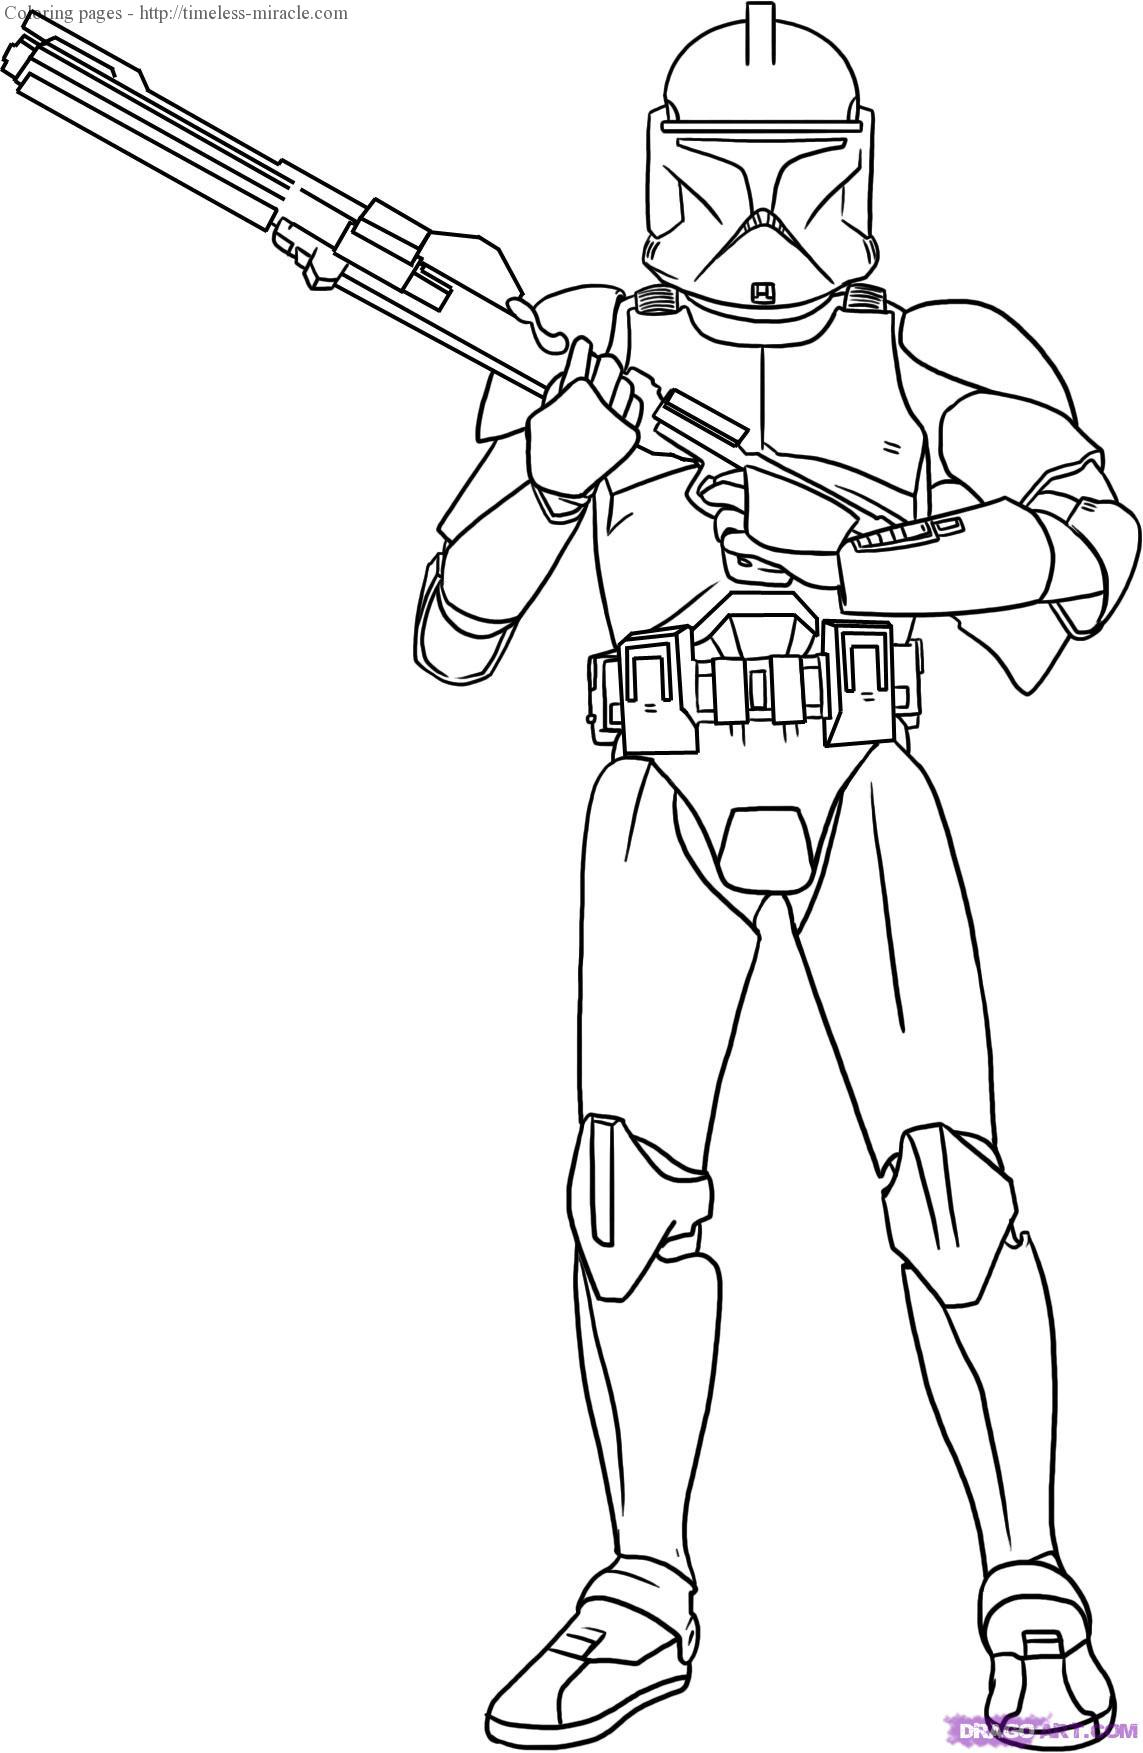 Coloring pages of star wars - timeless-miracle.com